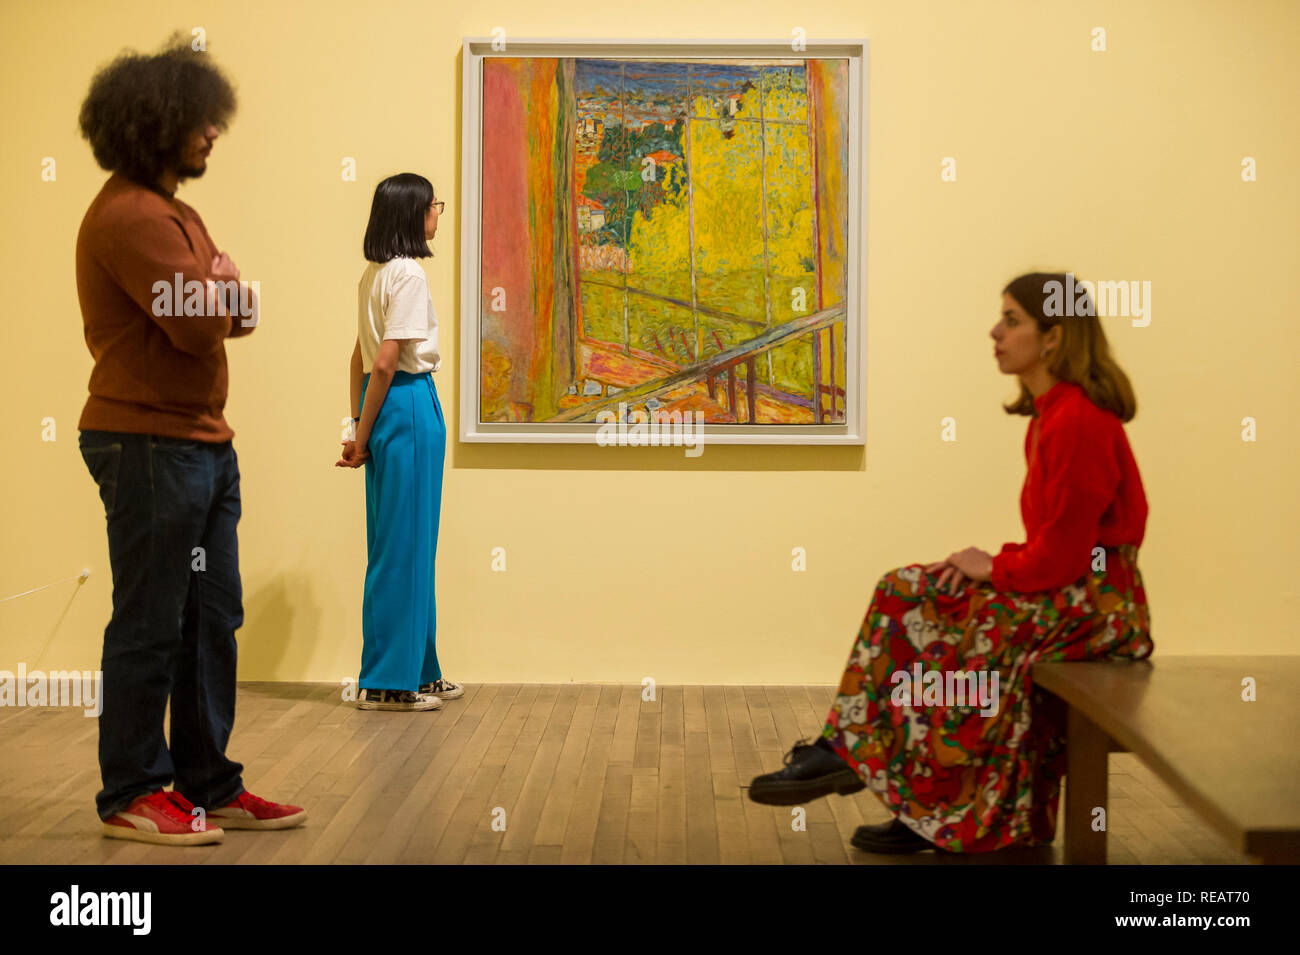 London, UK.  21 January 2019. Staff members view 'The Studio with Mimosa', 1939-46, by Pierre Bonnard.  Preview of an exhibition called 'Pierre Bonnard: The Colour of Memory' at Tate Modern.  This is the UK's first major Pierre Bonnard exhibition in 20 years bringing together around 100 of his works from around the world covering a period from 1912 to his death in 1947.  The works are on show 23 January to 6 May 2019.  Credit: Stephen Chung / Alamy Live News - Stock Image